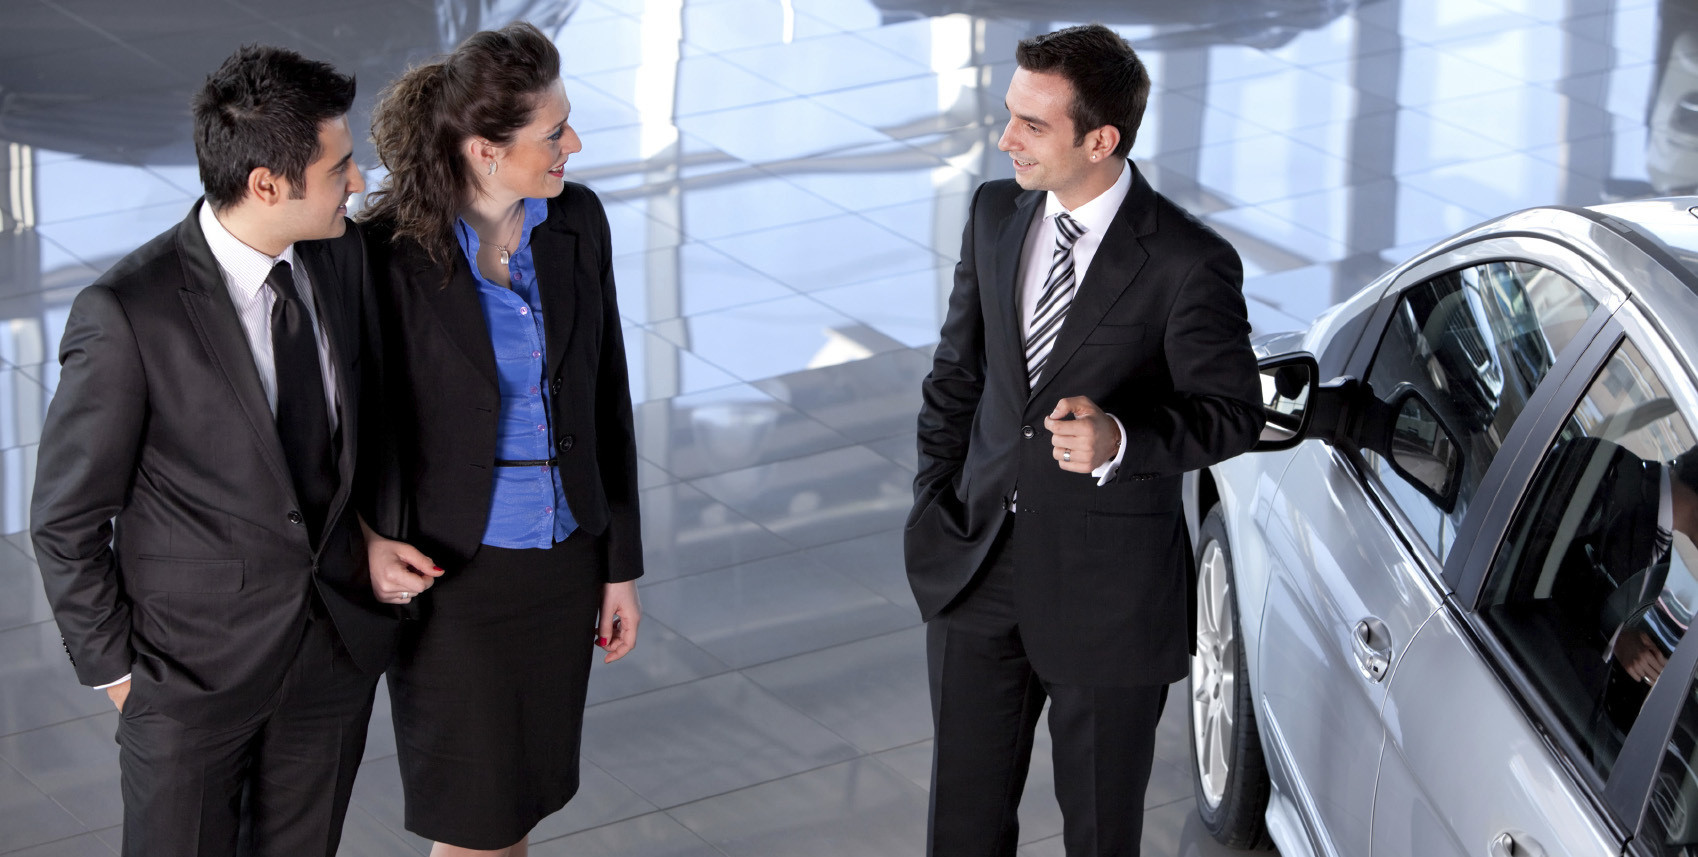 Credit Concerns? Pohanka Hyundai of Capitol Heights Can Help!